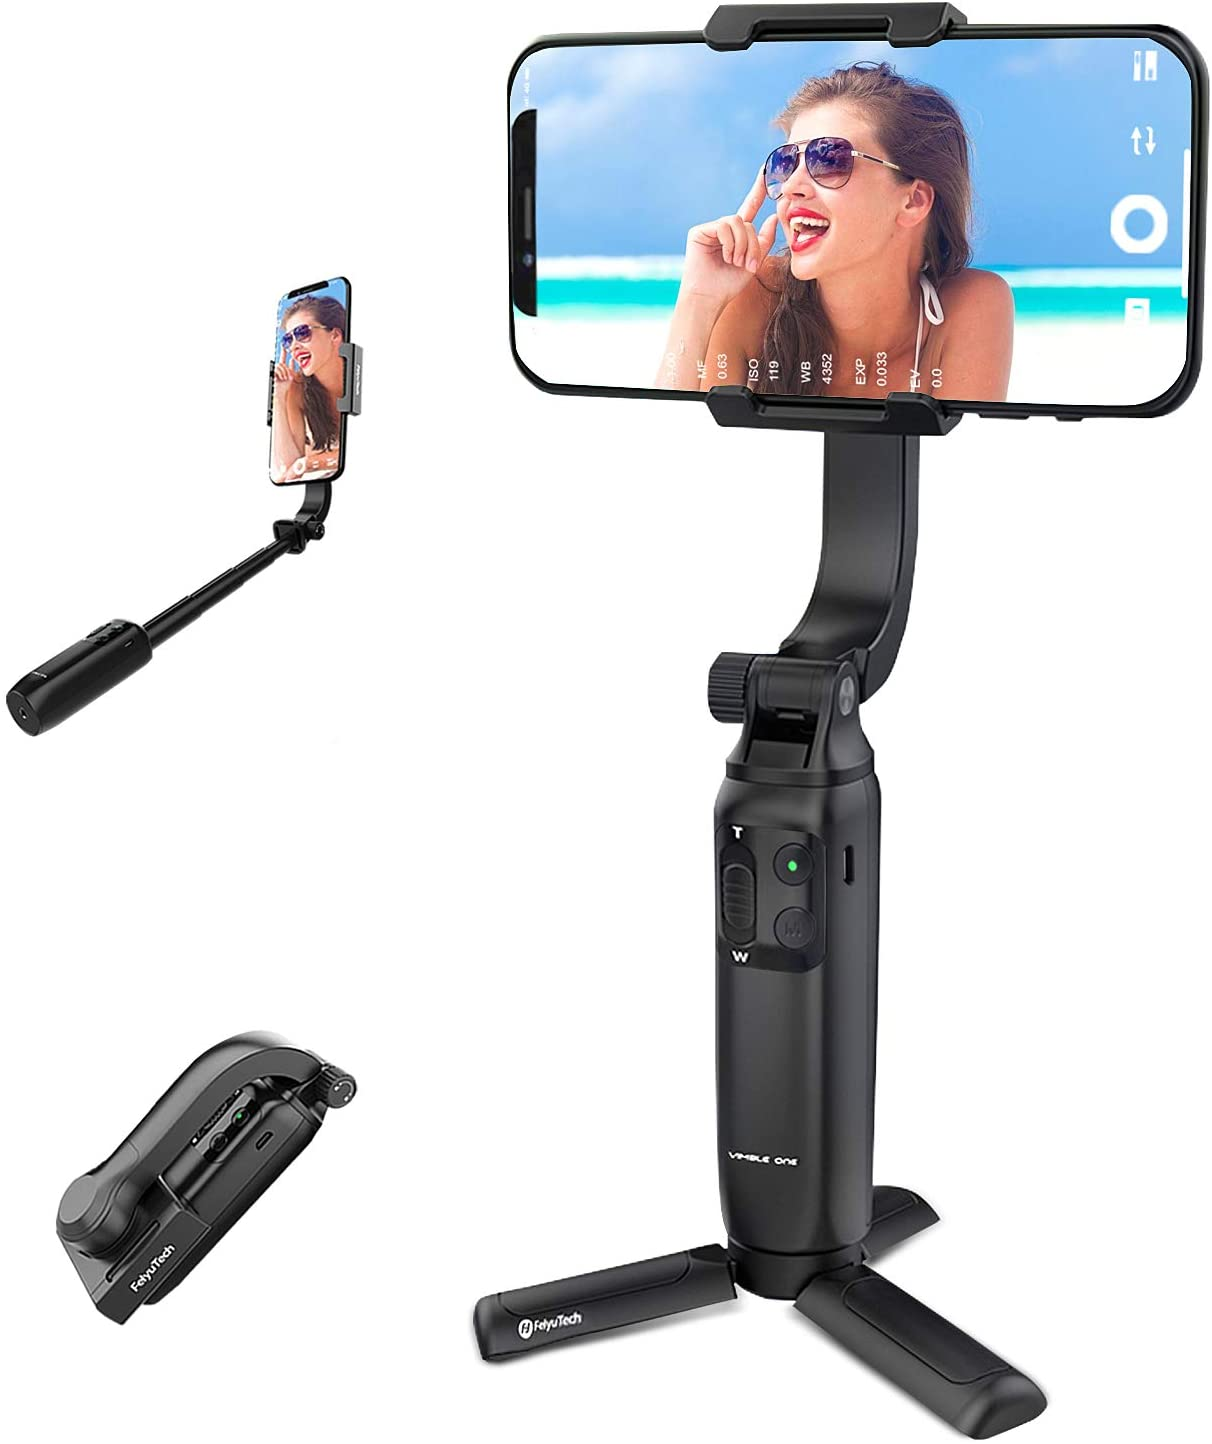 Phone Gimbal Stabilizer, FeiyuTech Vimble One - The Lightweight Foldable and Extensible Gimbal for iOS and Android Smartphones, with Gasture Control by Feiyu On App.